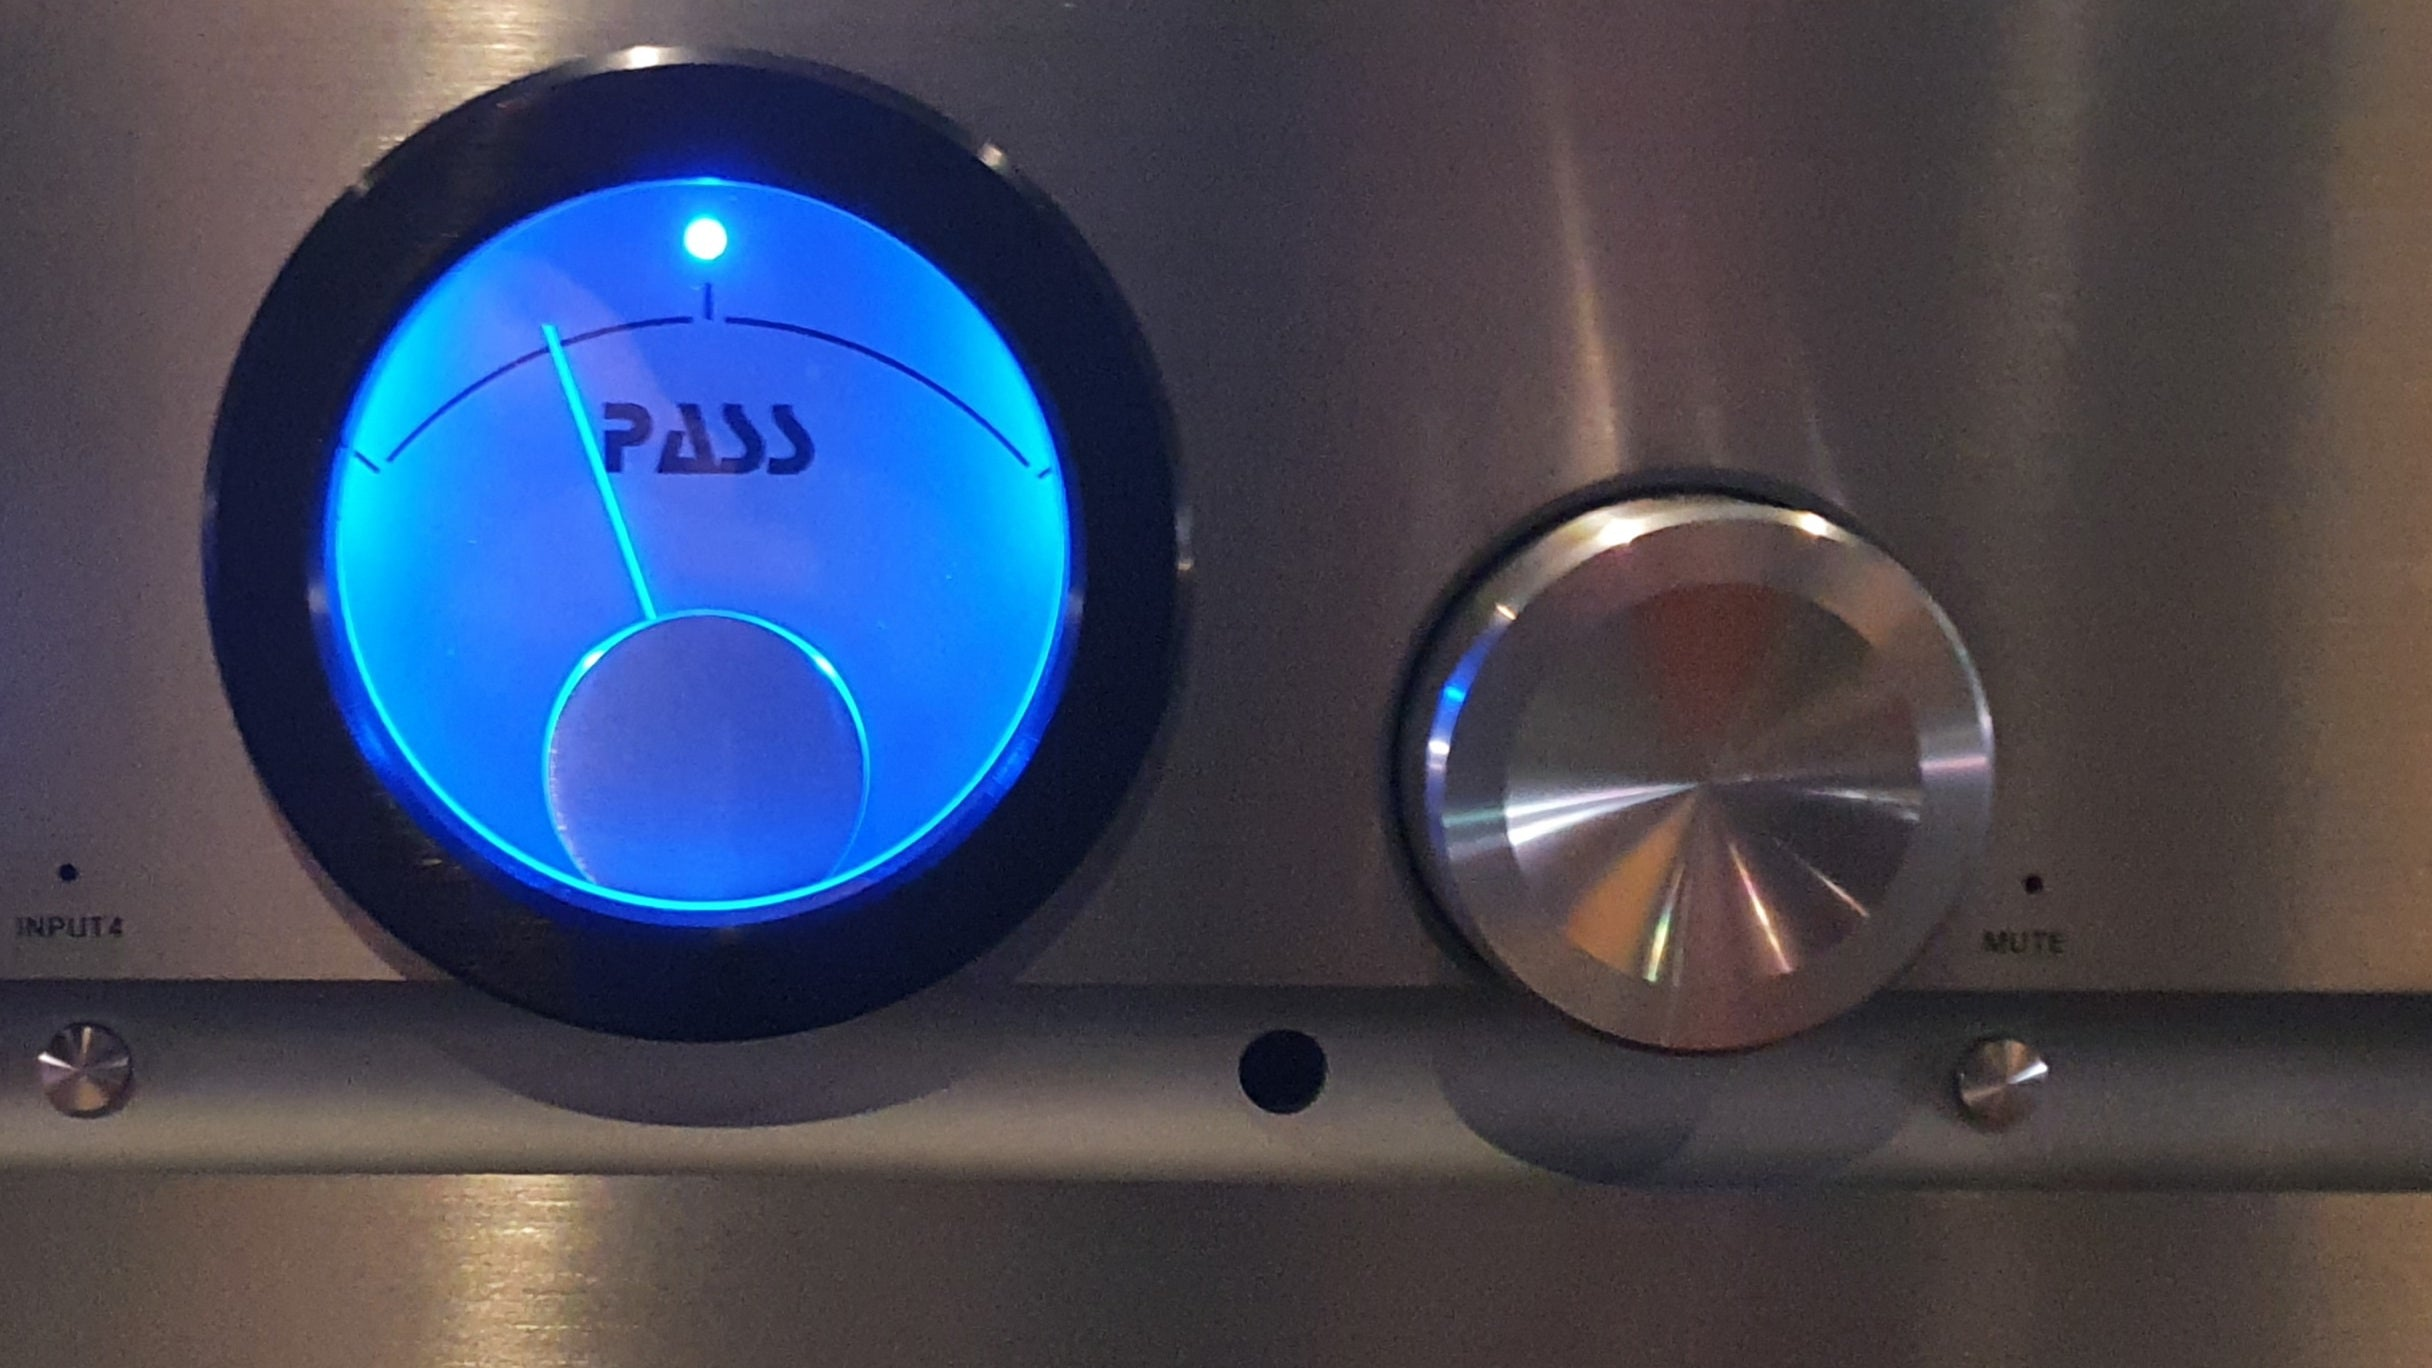 PASS LAbs INT60 Integrated Amplifier 2 | Douglas HiFi Perth